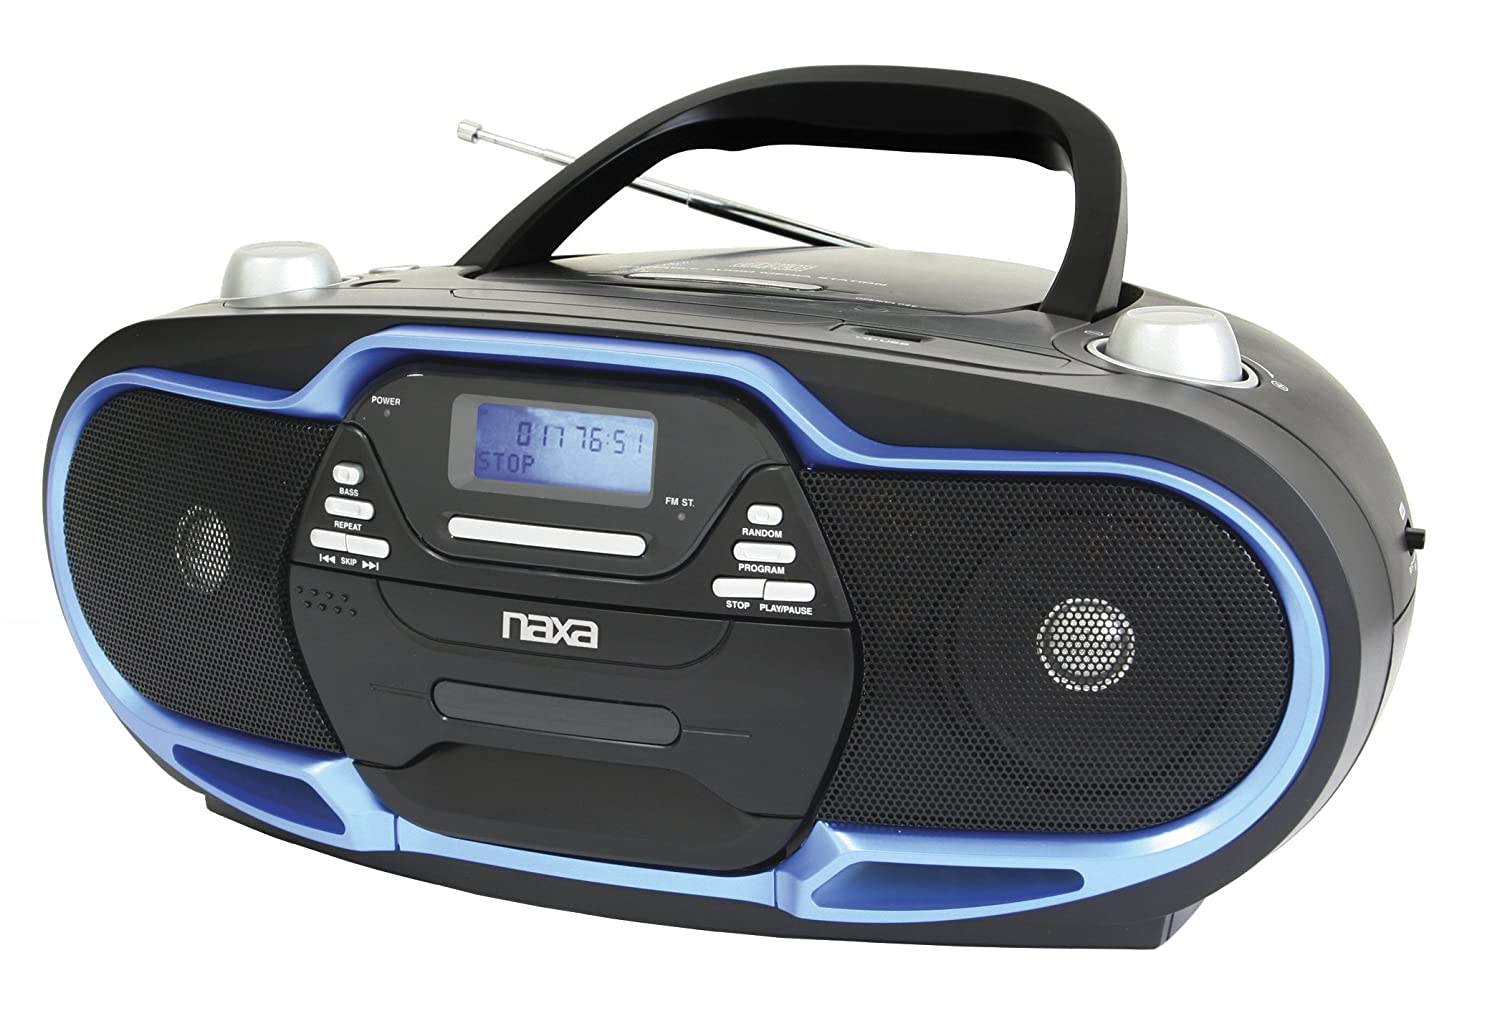 naxa portable mp3 cd player am fm stereo radio usb input black blue 840005004487 ebay. Black Bedroom Furniture Sets. Home Design Ideas